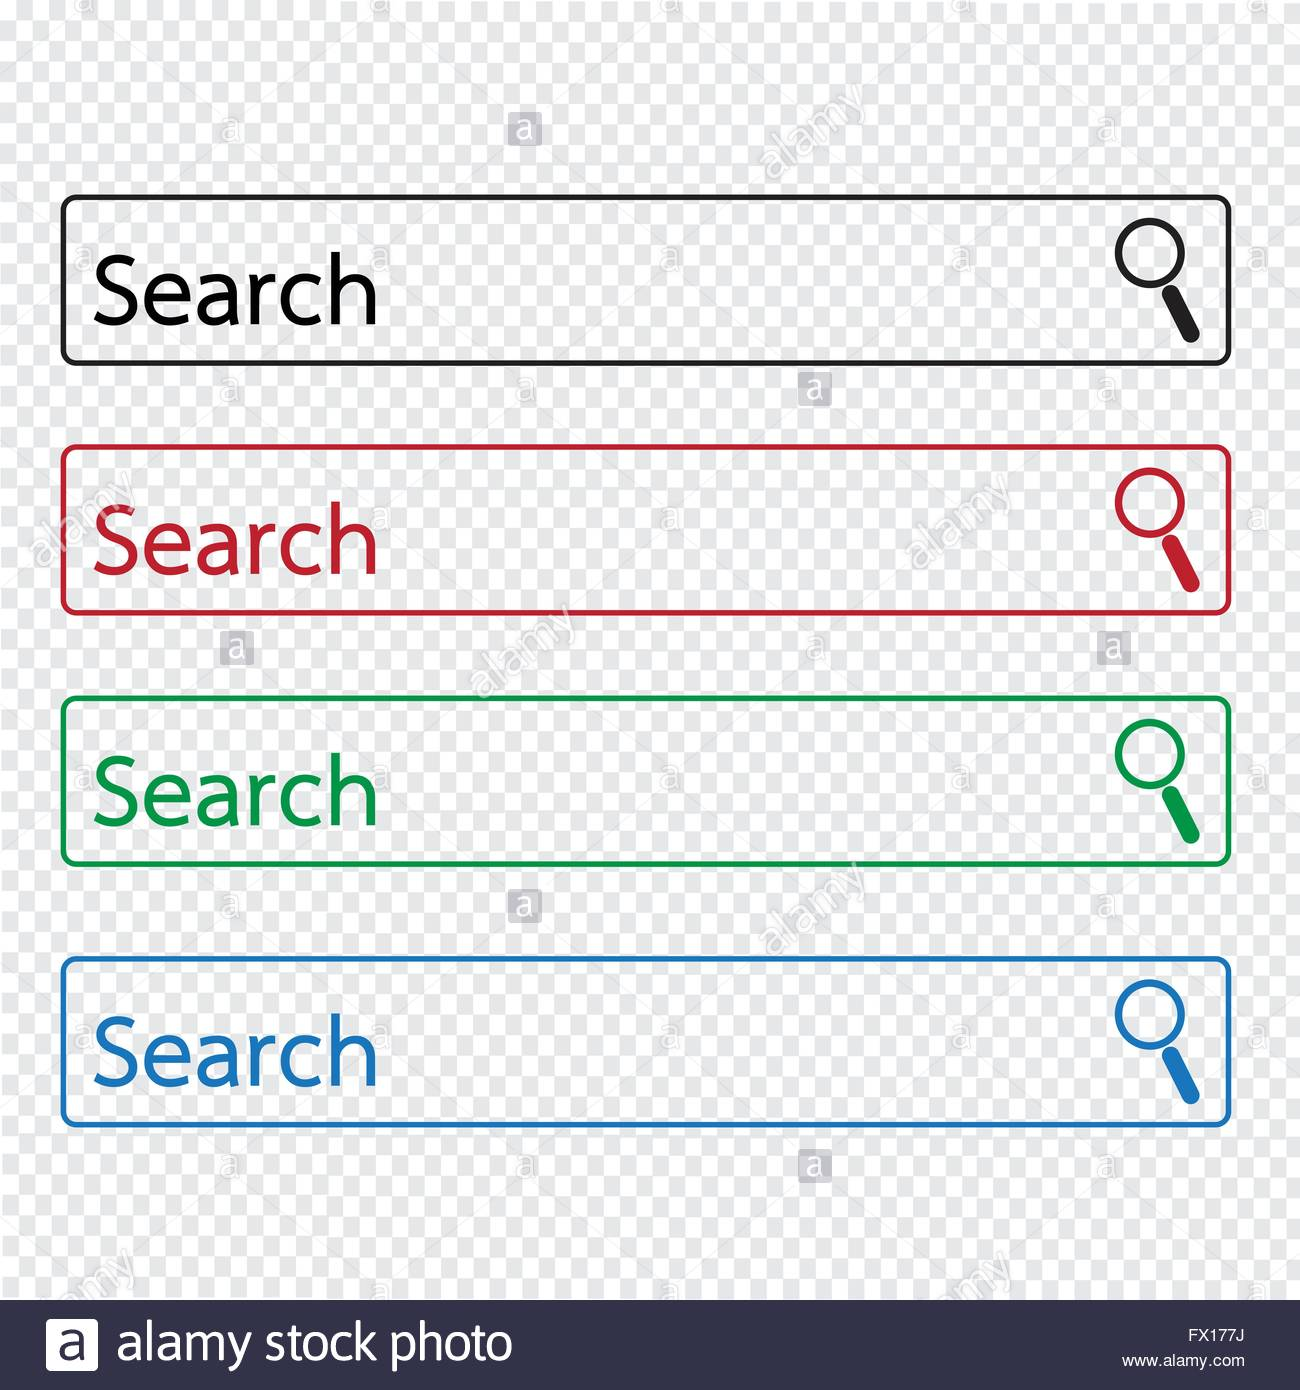 1300x1390 Free Search Bar Icon Vector 126282 Download Search Bar Icon